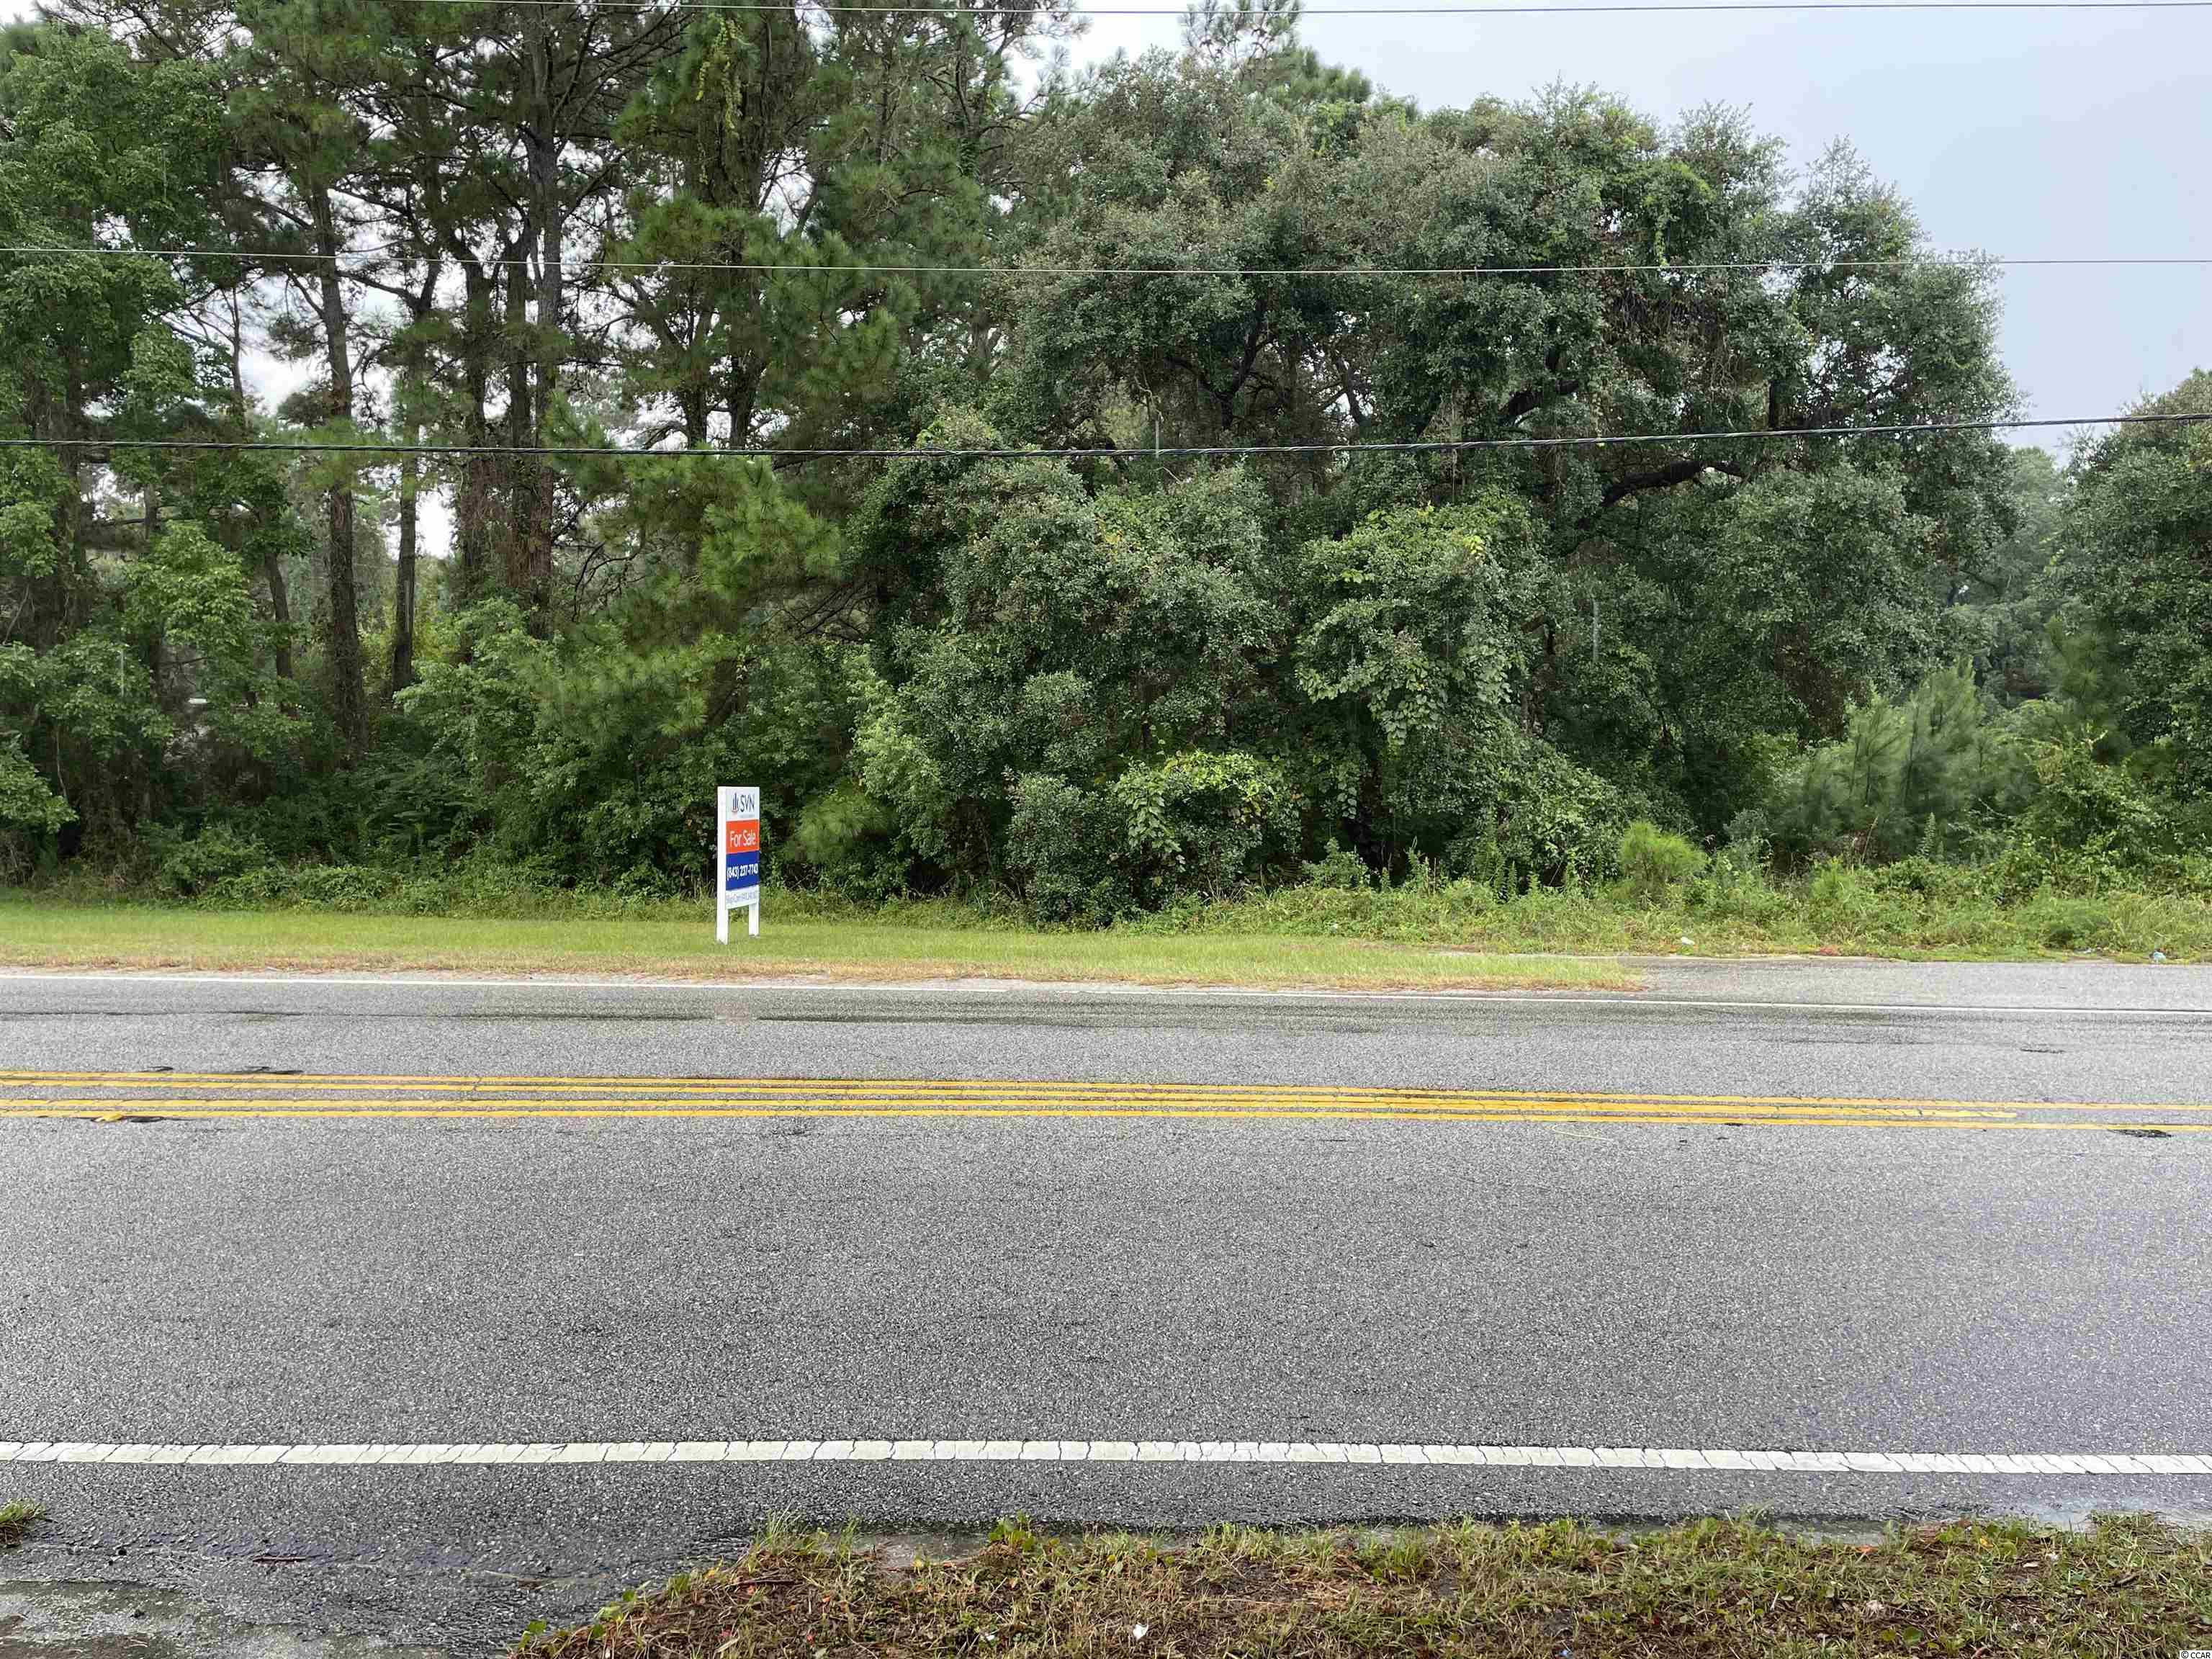 This is an excellent opportunity for development in the heart of Pawleys Island  1.96 ac. commercial property with all utilities.  Purchase price includes both lots.  Lot one is 1.26 ac. and lot two is .70 ac.  The lots can be sold separately or as one. Permitted use as General Commercial and property is subject to the Overlay District in Georgetown County.